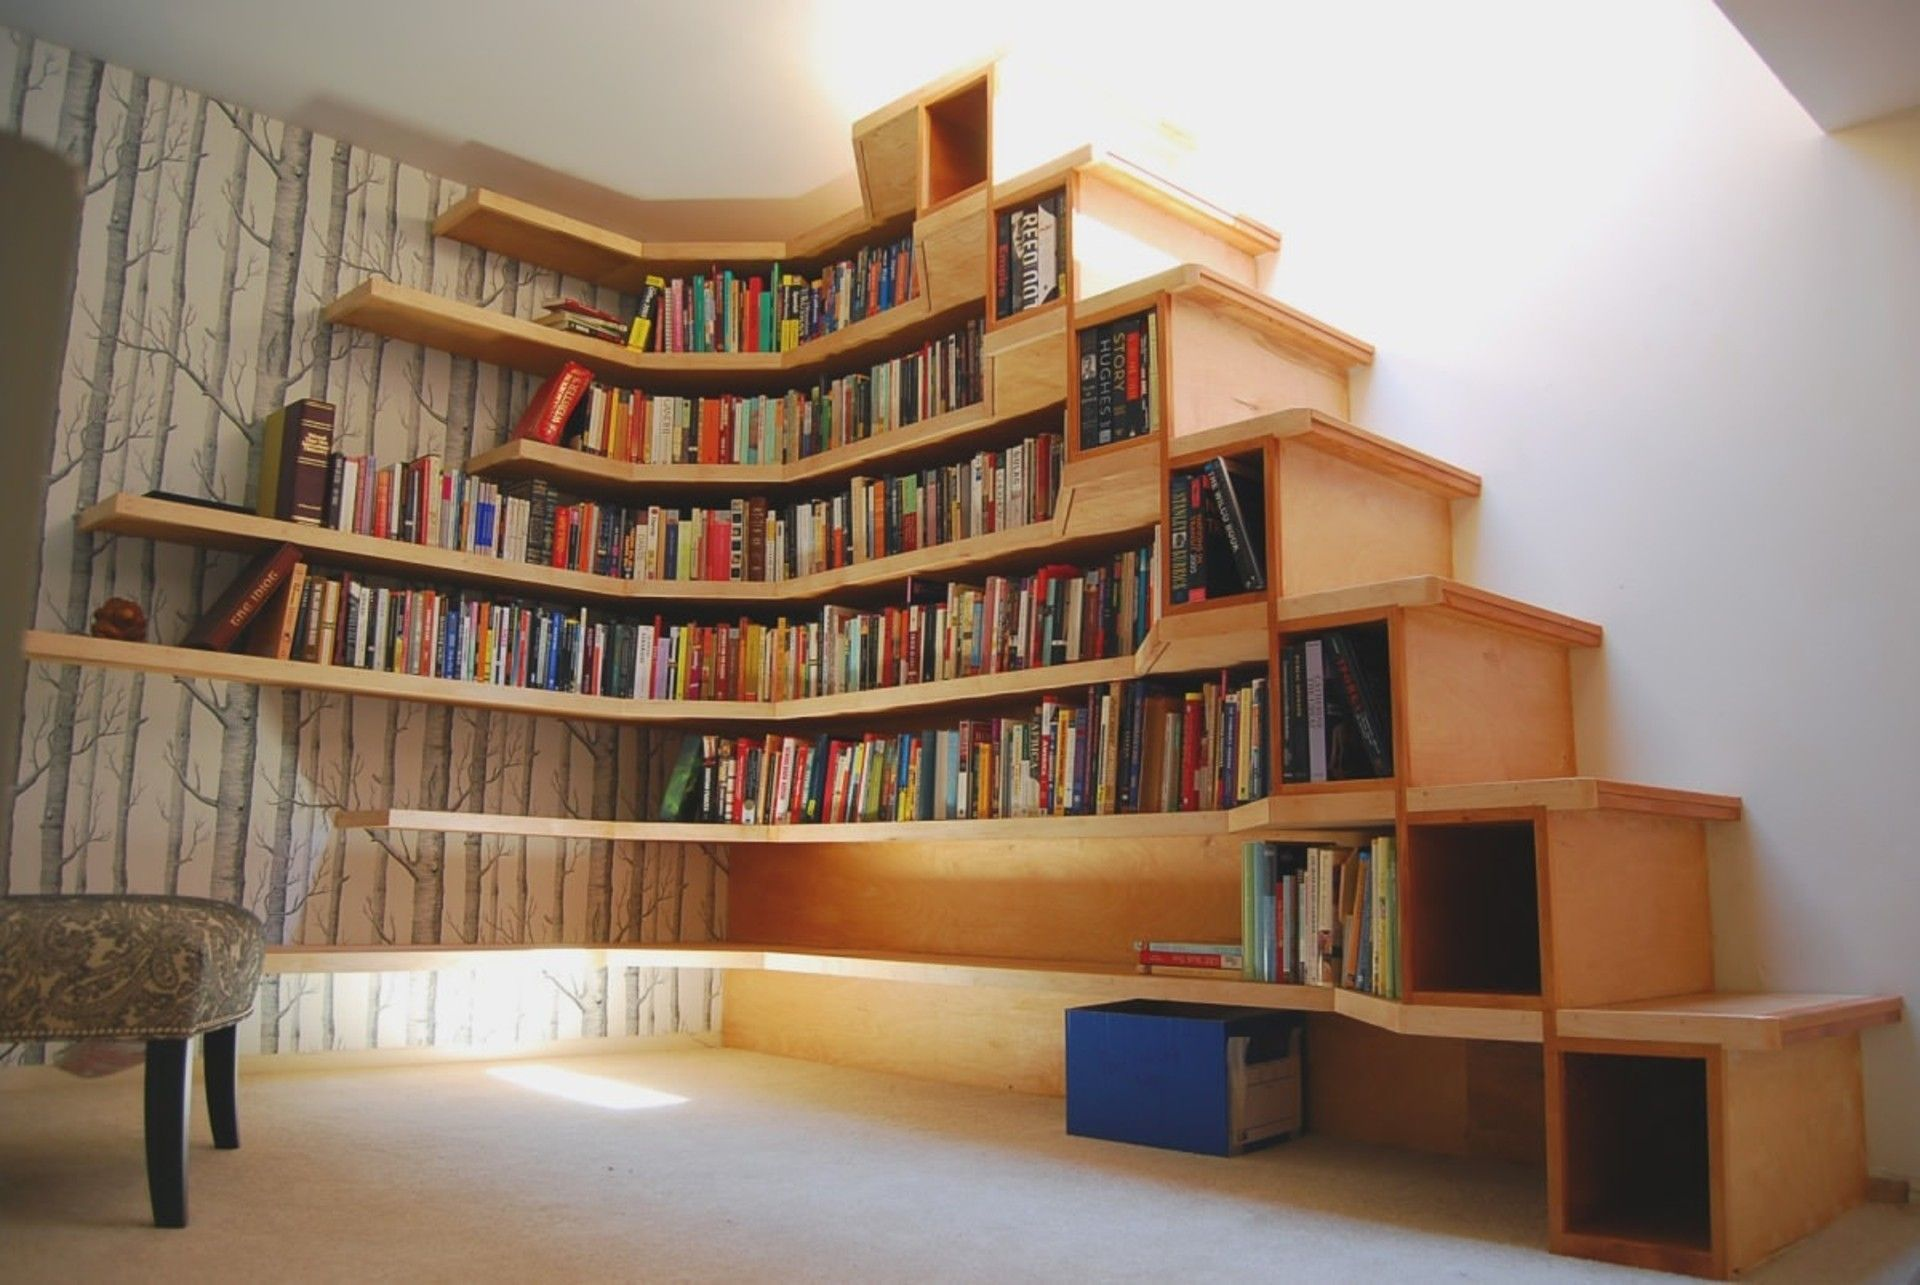 50 Unique Bookshelf Ideas For Better Reading Environtment The Urban Interior Bookcase Stairs Staircase Bookshelf Corner Bookshelves